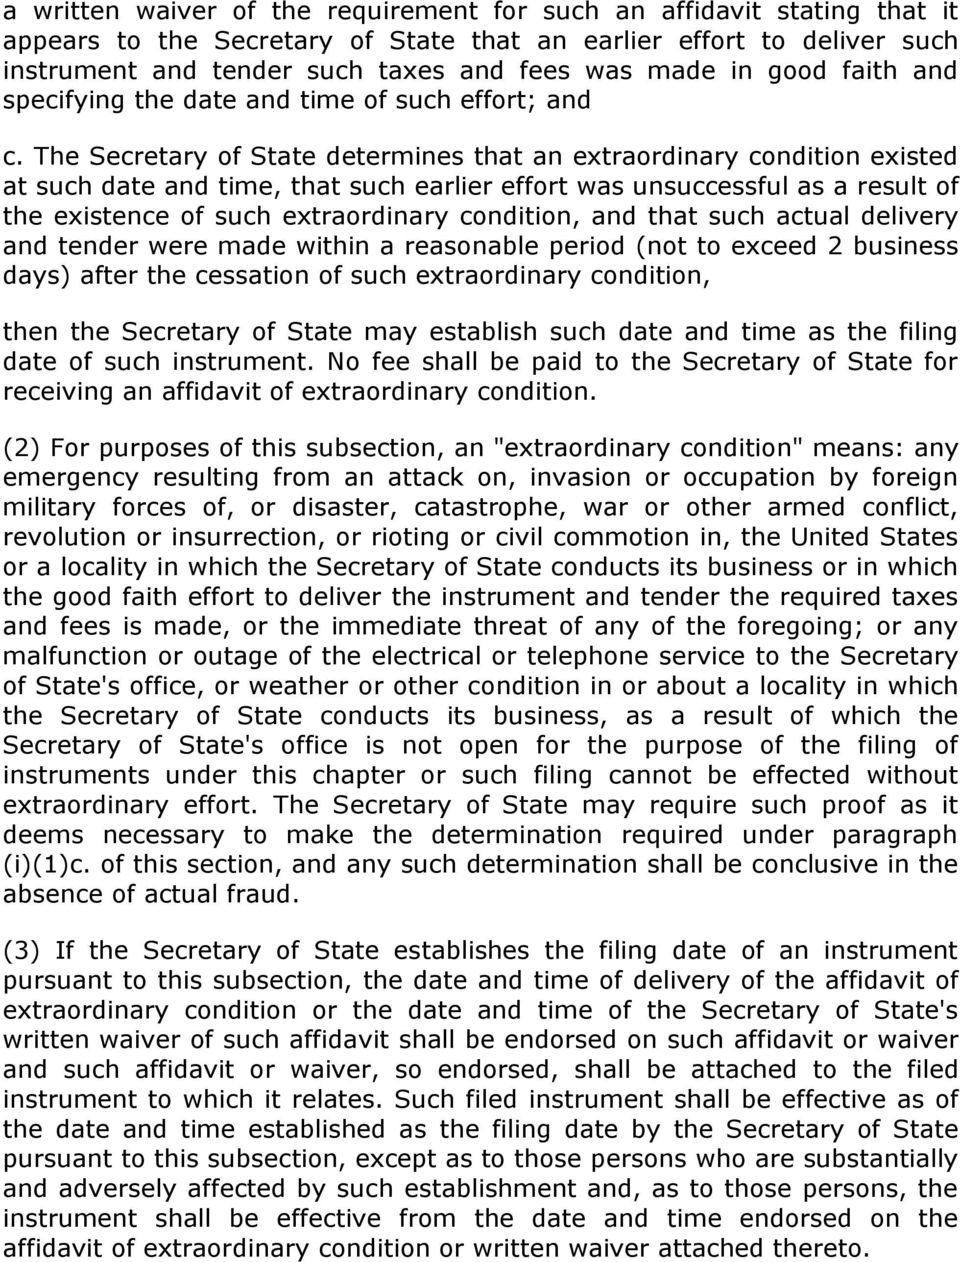 The Secretary of State determines that an extraordinary condition existed at such date and time, that such earlier effort was unsuccessful as a result of the existence of such extraordinary